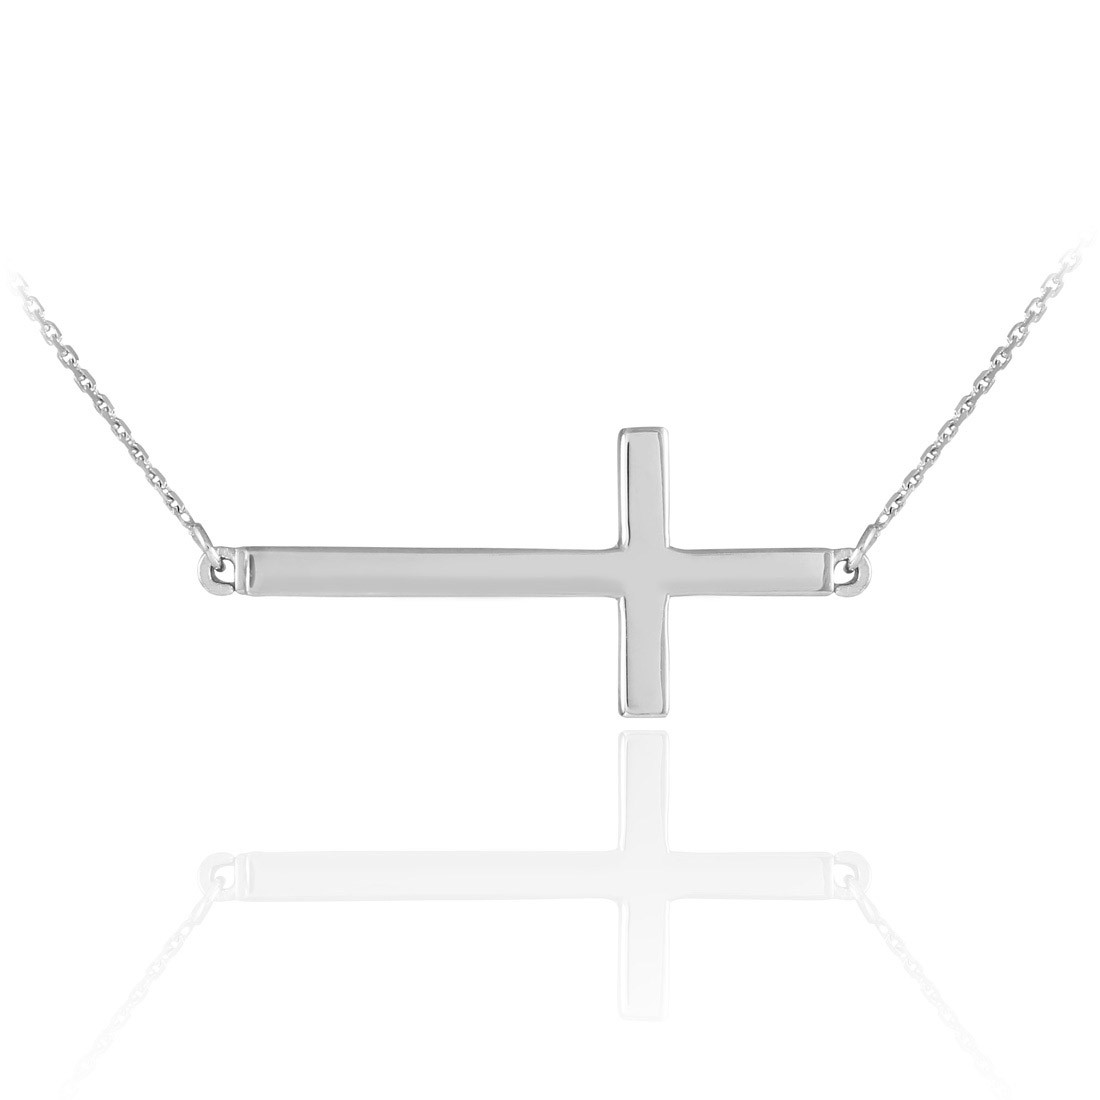 Sideways cross pendant necklace in 9ct white gold gold boutique gb54494w 395 instock httpsgoldboutiquesideways cross pendant necklace in white gold gb54494w gold boutique aloadofball Choice Image